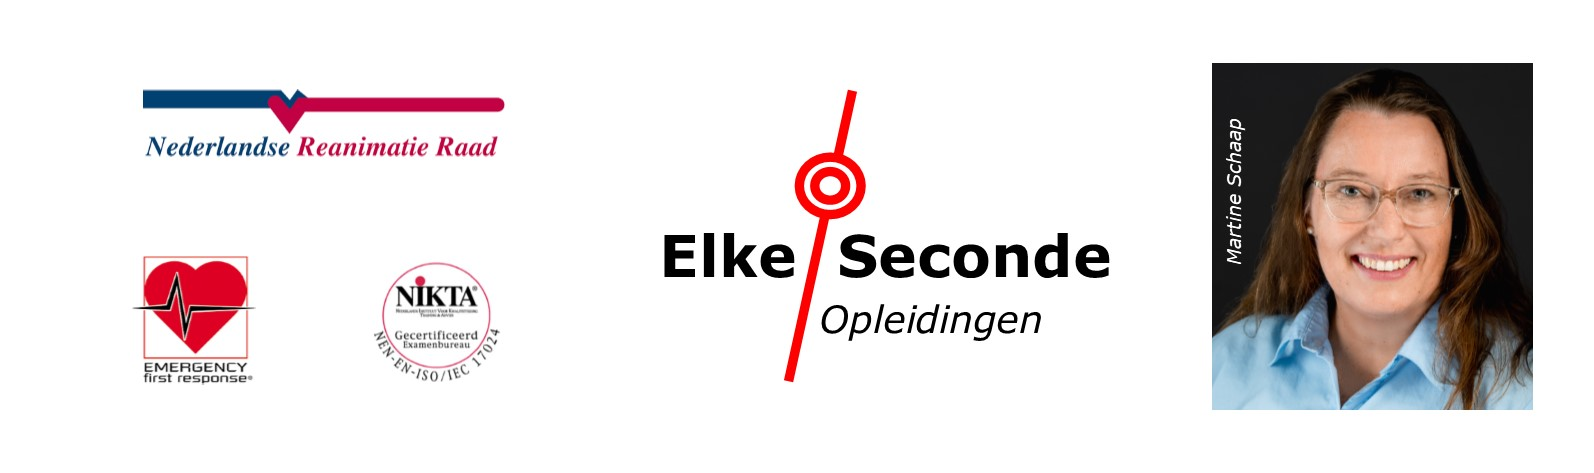 Elke Seconde